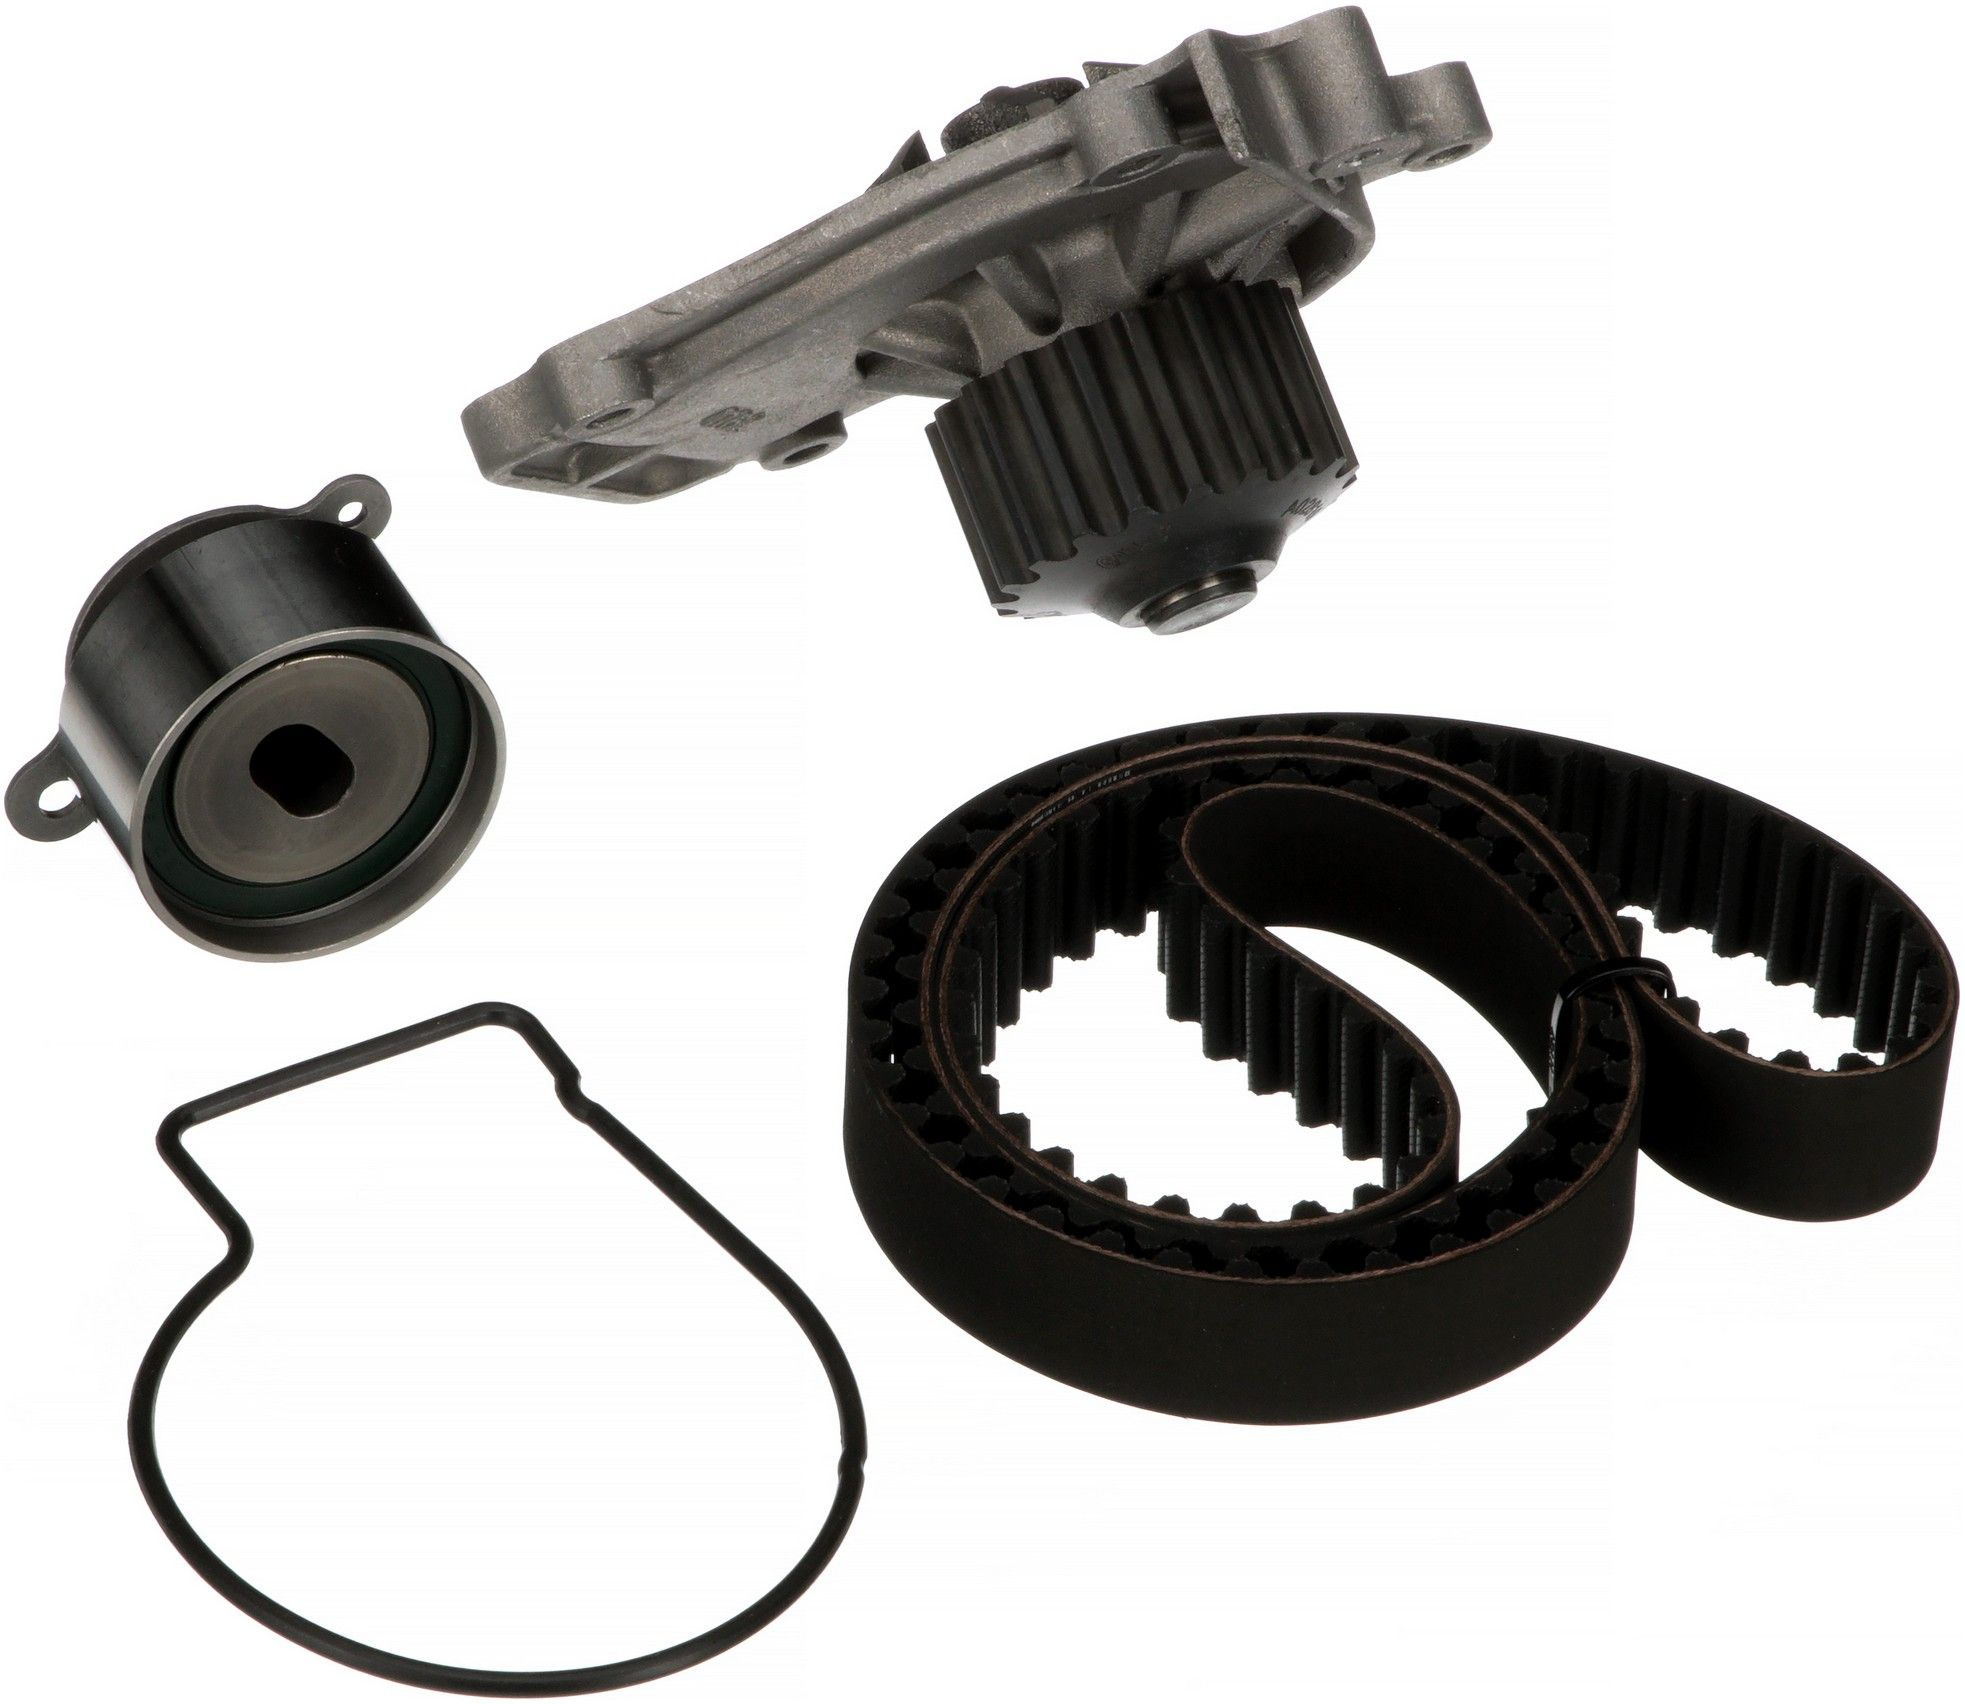 Honda Prelude Engine Timing Belt Kit With Water Pump Replacement 1990 4 Cyl 20l Gates Tckwp142 W Dohc Eng Interference Application